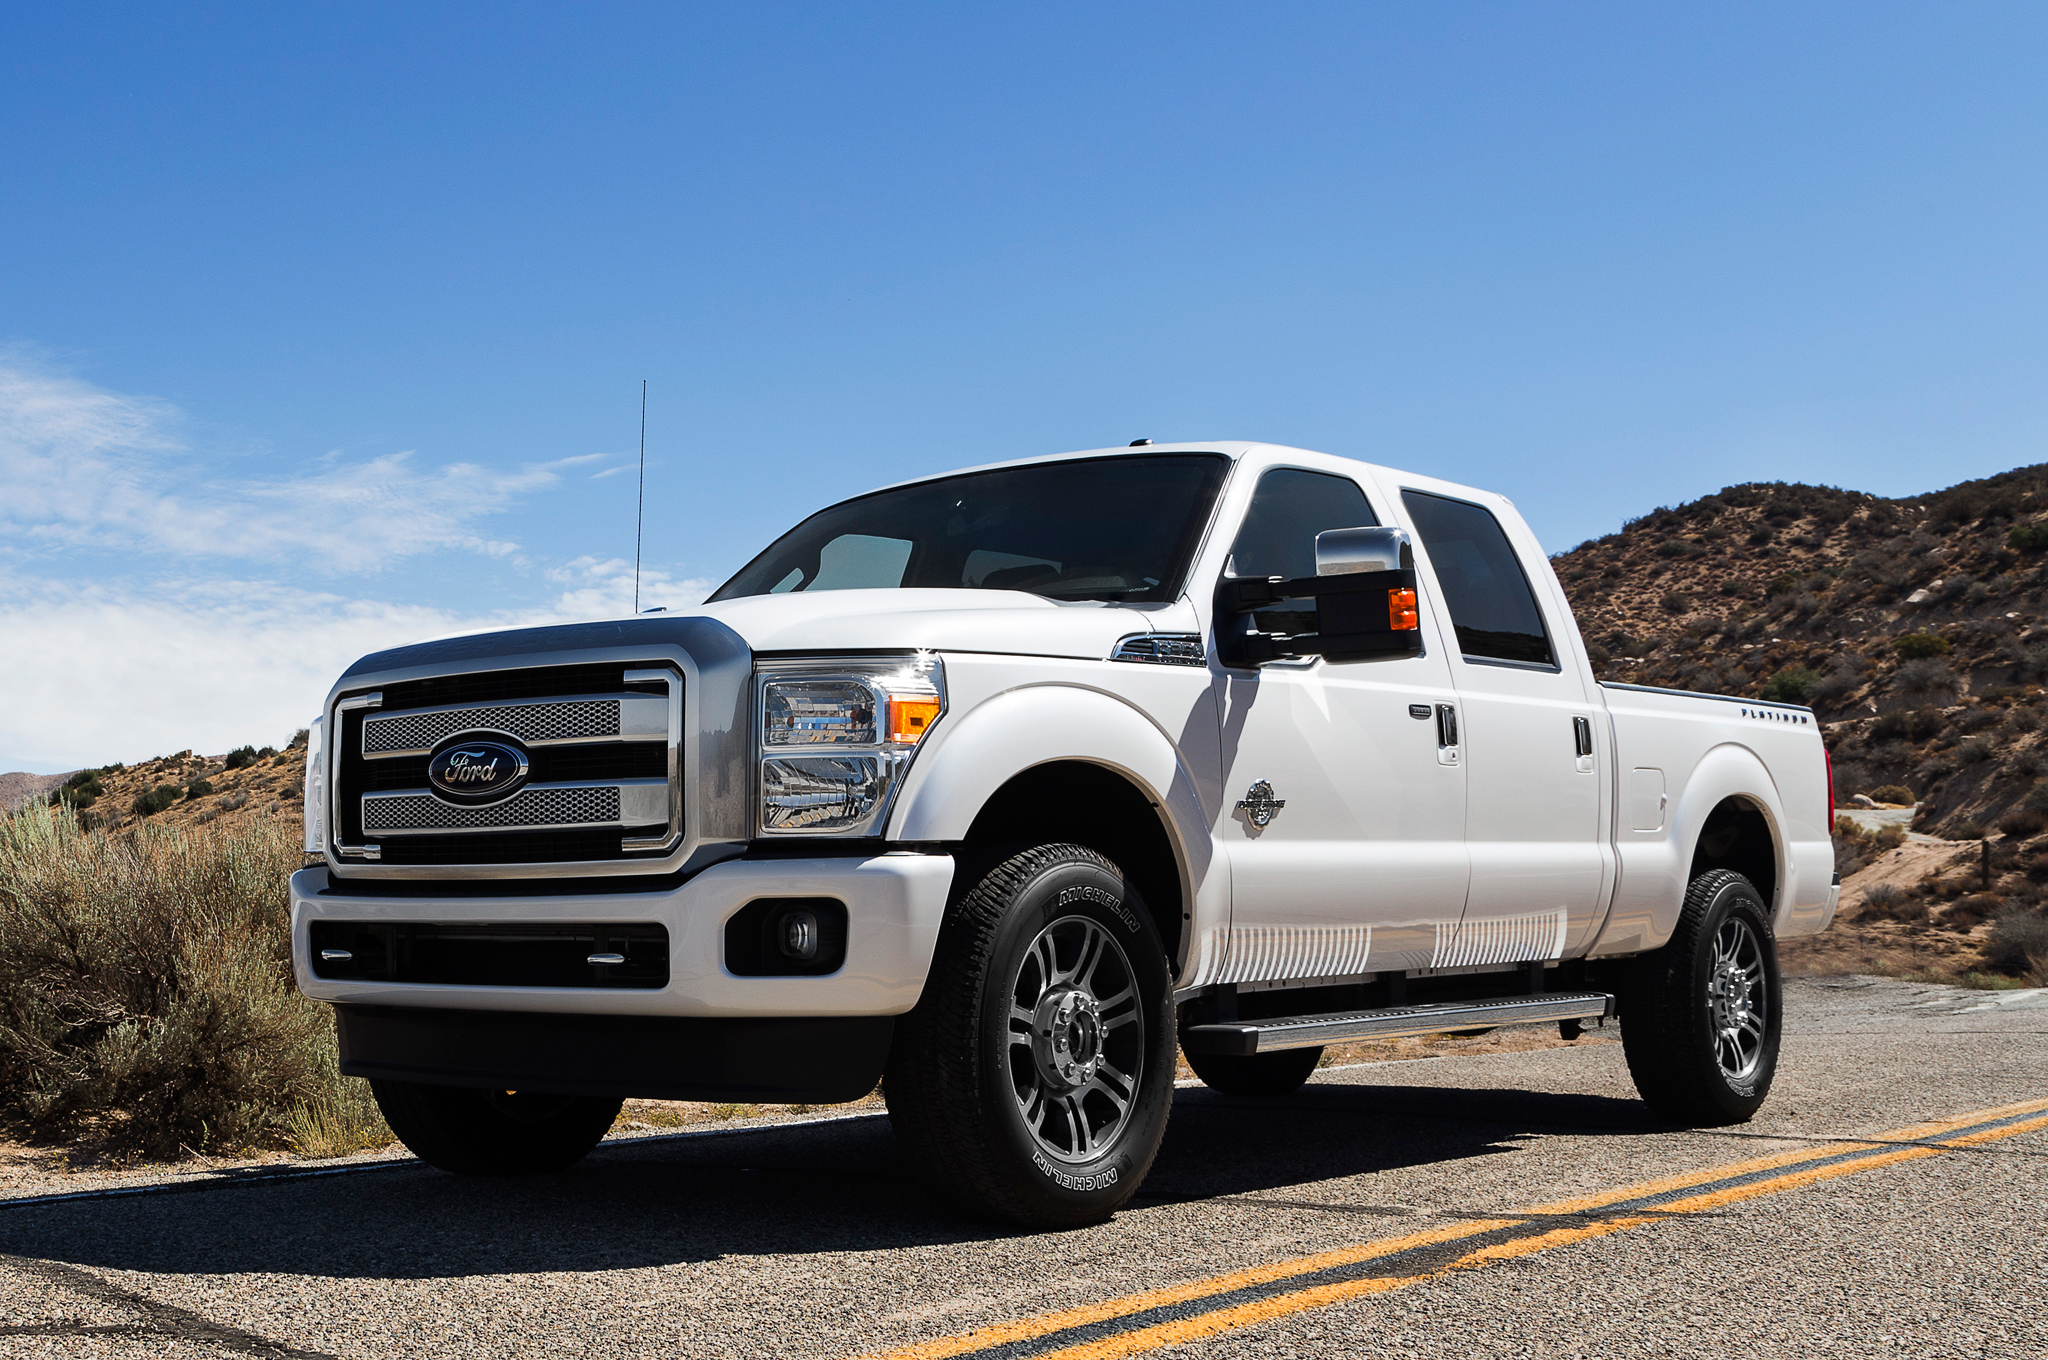 2016 ford f 350 super duty review ratings edmunds upcoming chevrolet. Black Bedroom Furniture Sets. Home Design Ideas